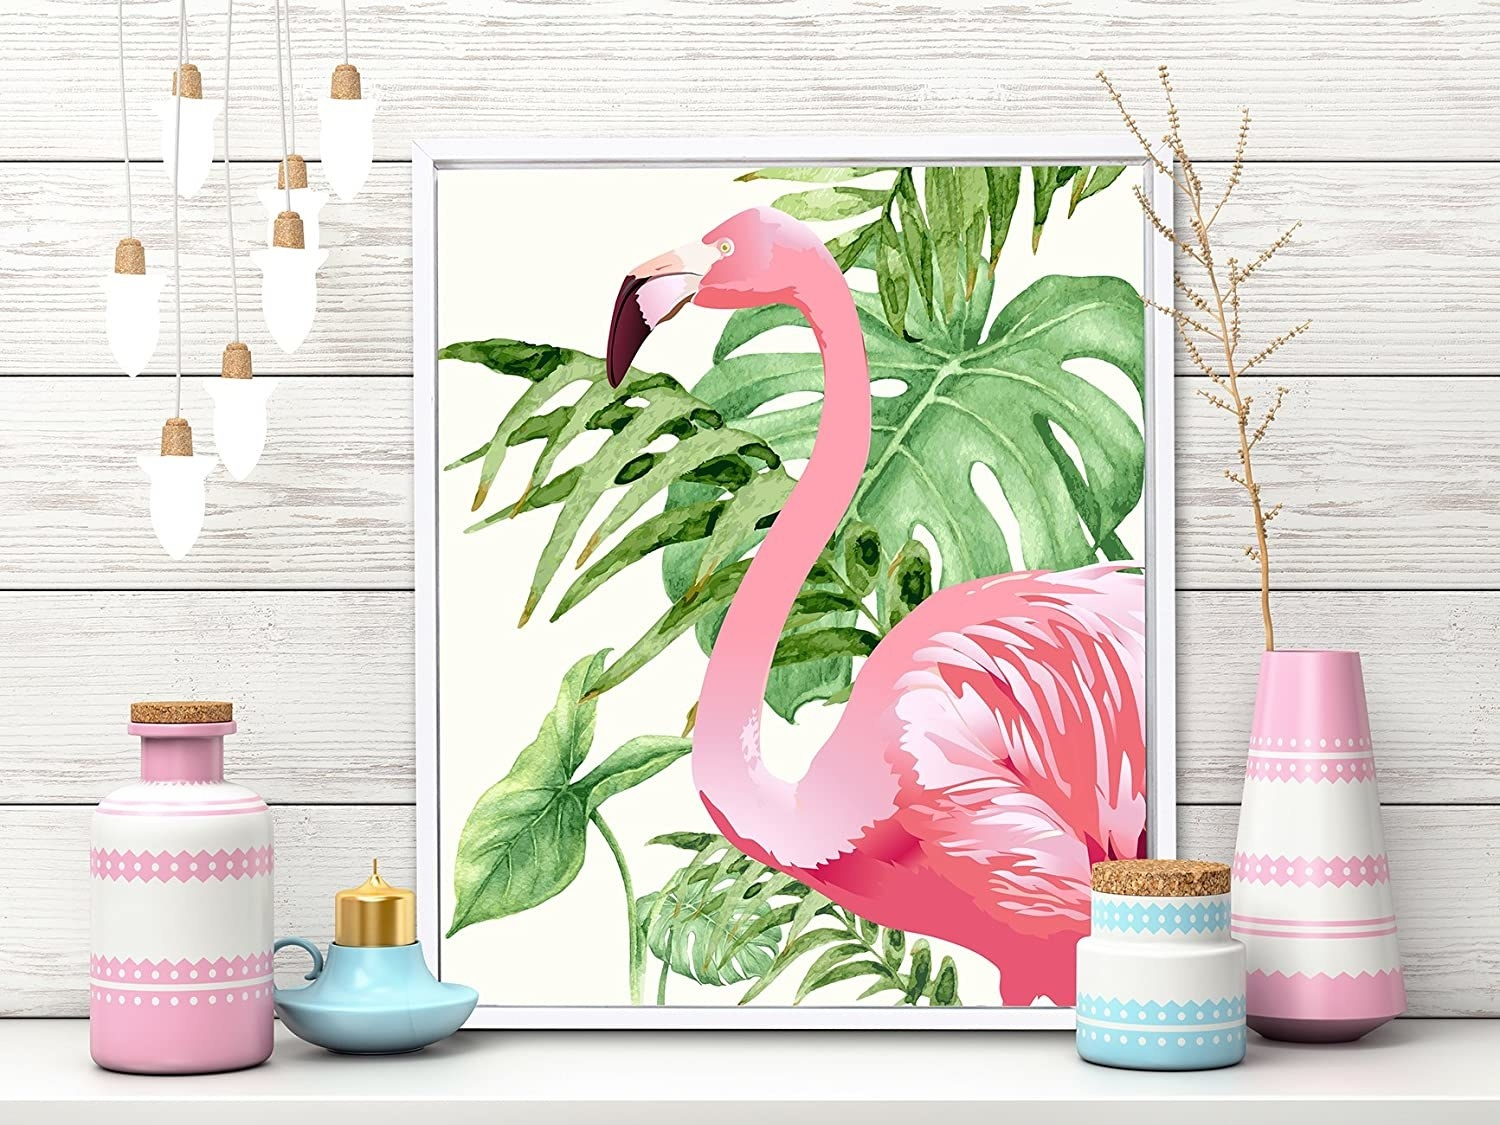 A flamingo painting surrounded by flower pots and bulbs